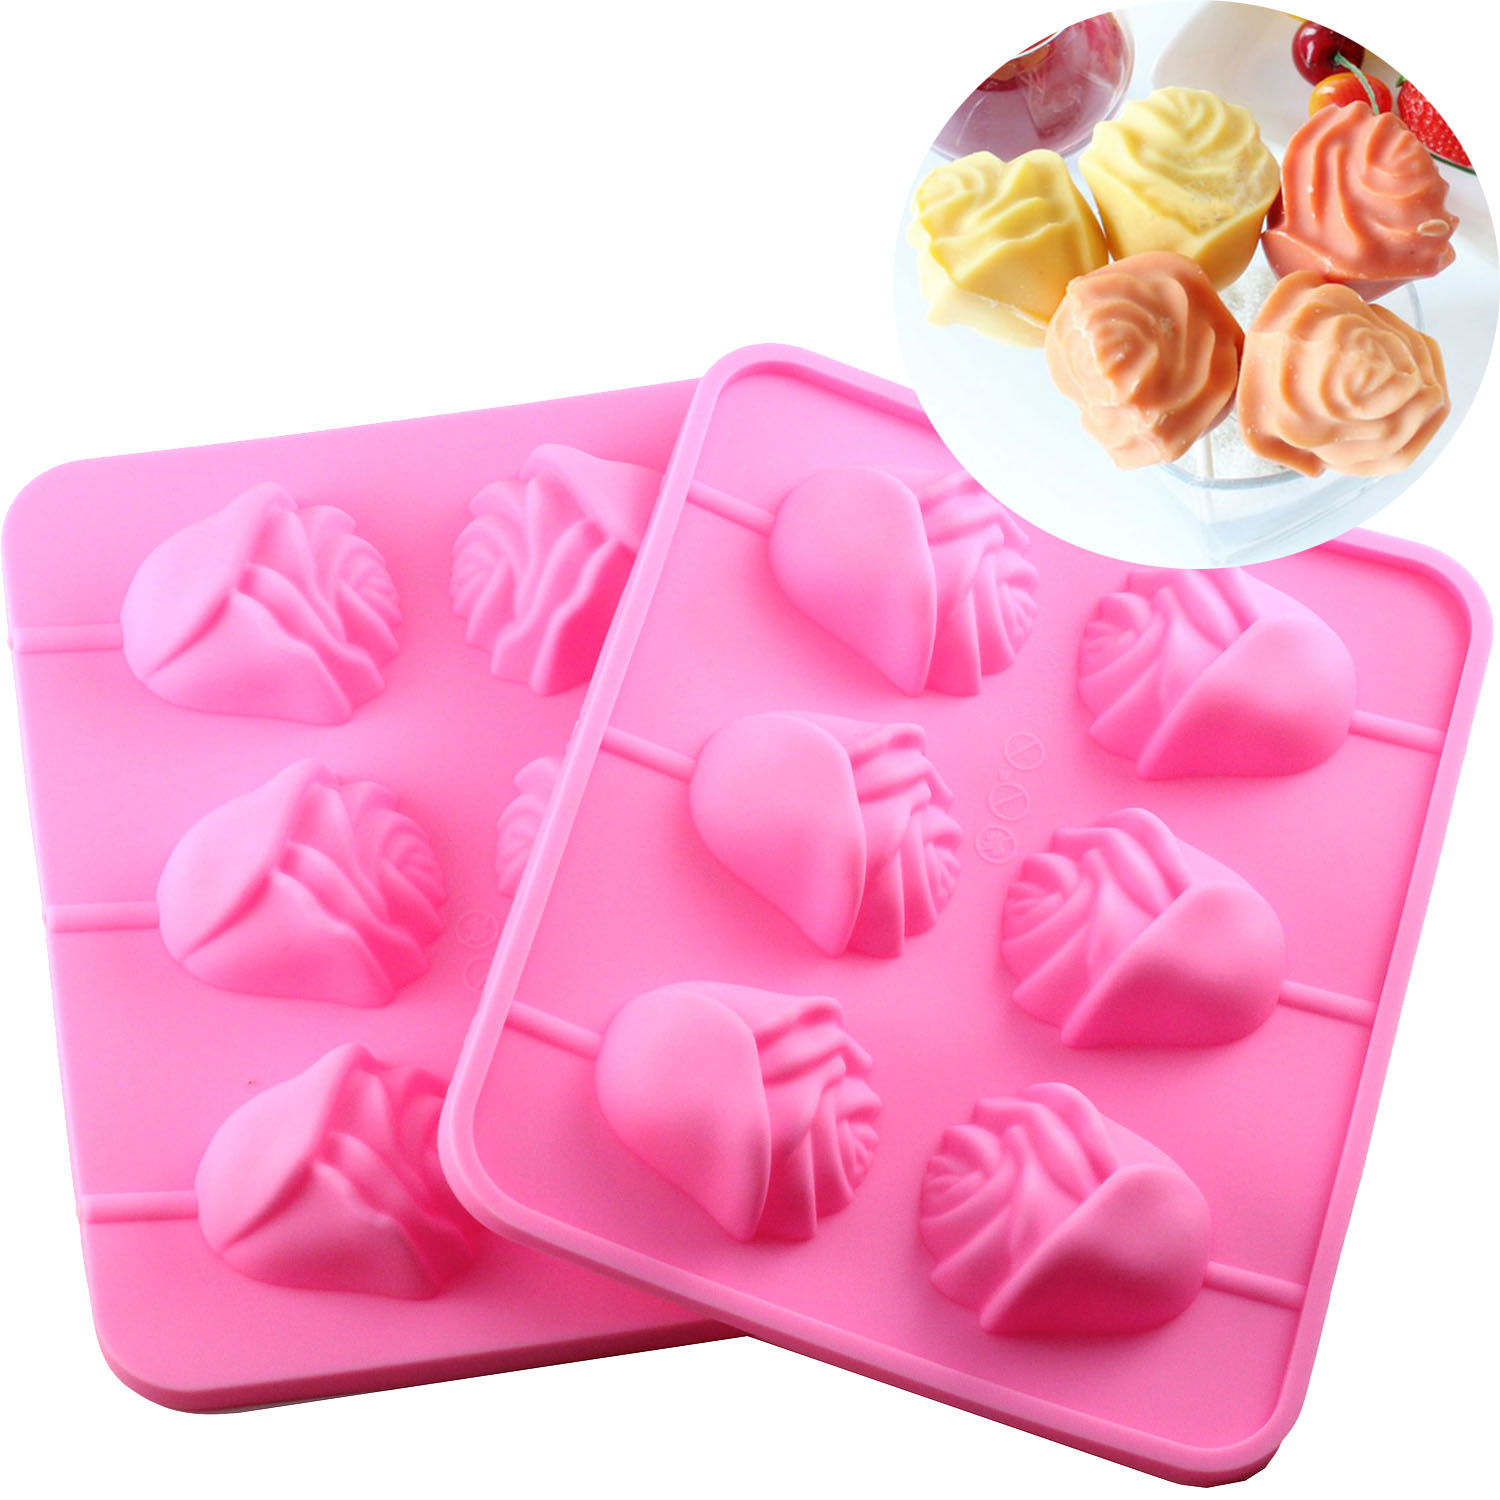 6 Rose Shapes Silicone Lollipop Baking Mold Tray 1pcs Pop Cake Stick Mould for Party Holidays Cupcake Baking Tools